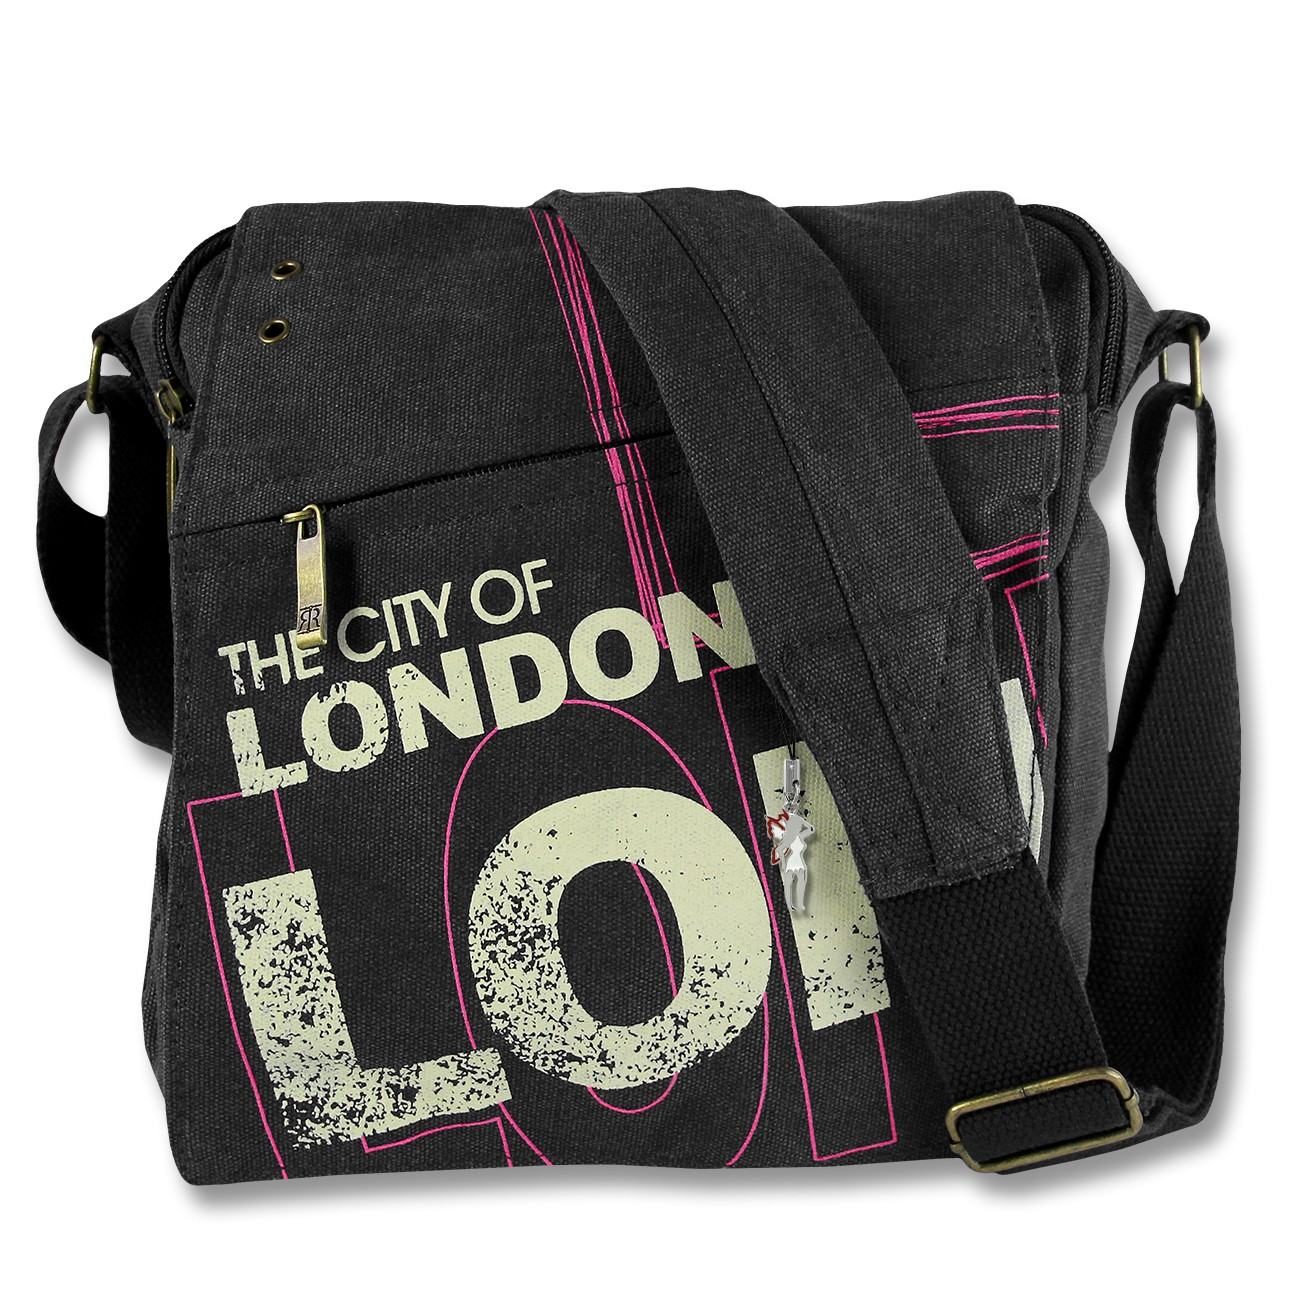 Umhängetasche Canvas schwarz Crossbody Messenger London Robin Ruth OTG202D